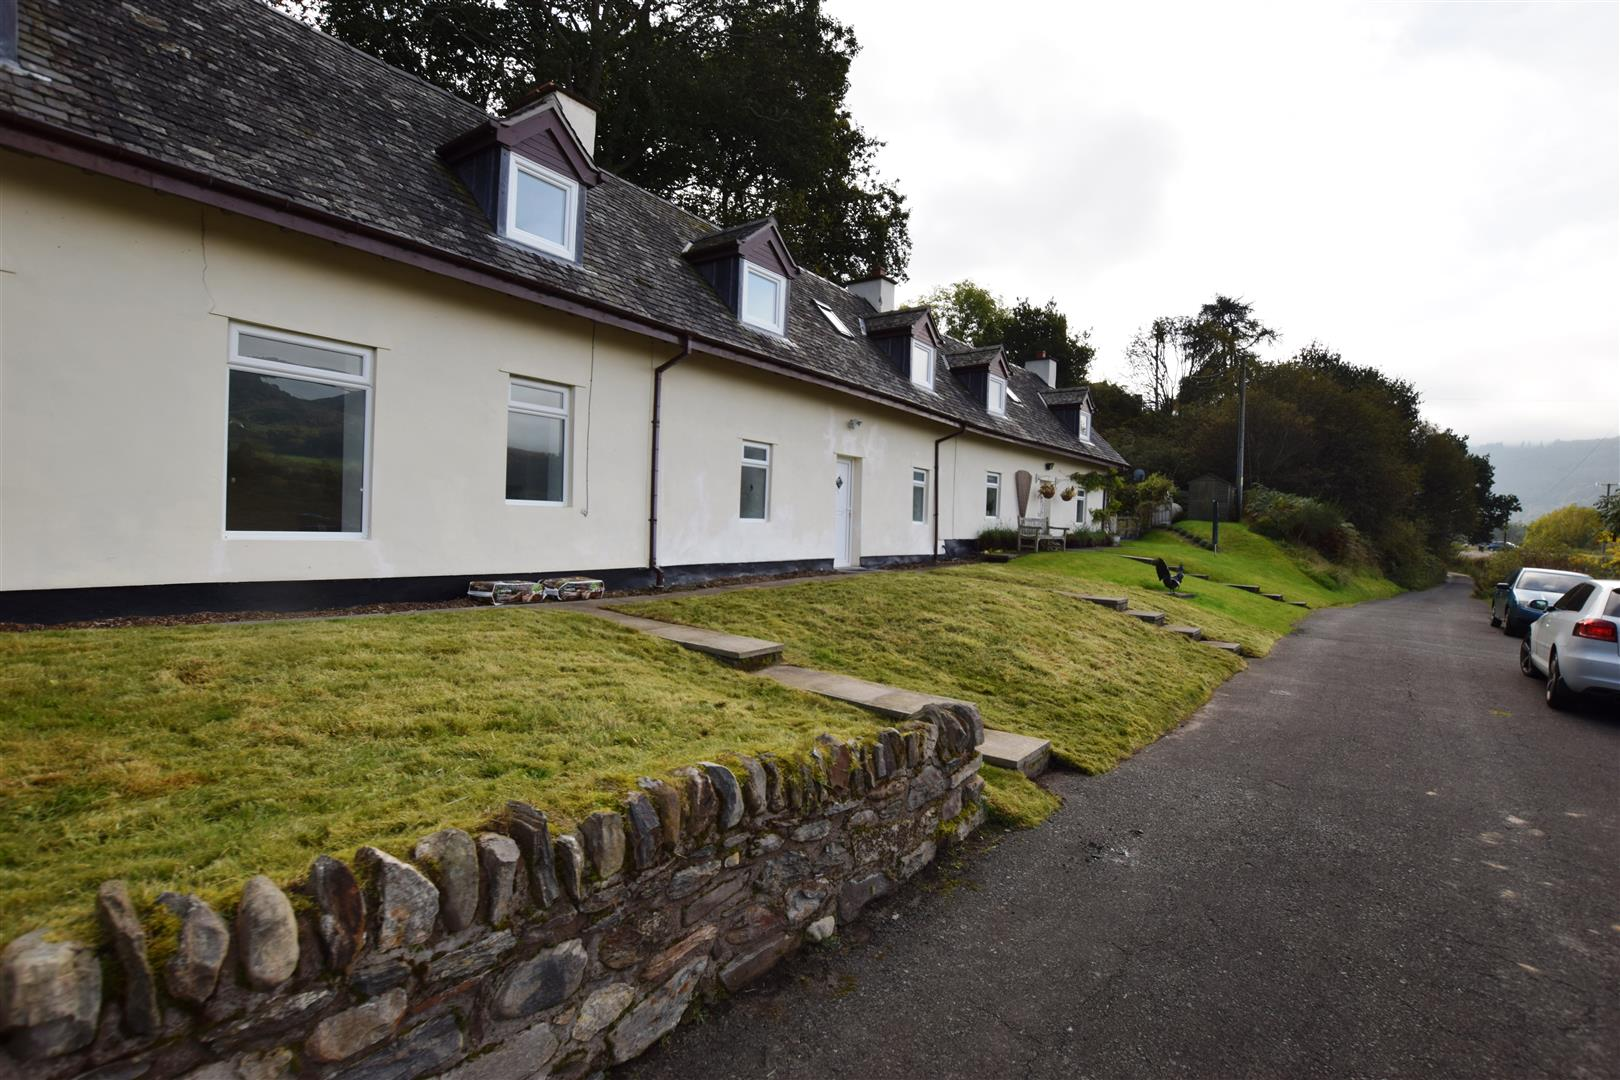 2, Guay Farm Cottages, Kindallachan, Pitlochry, Perthshire, PH9 0NP, UK